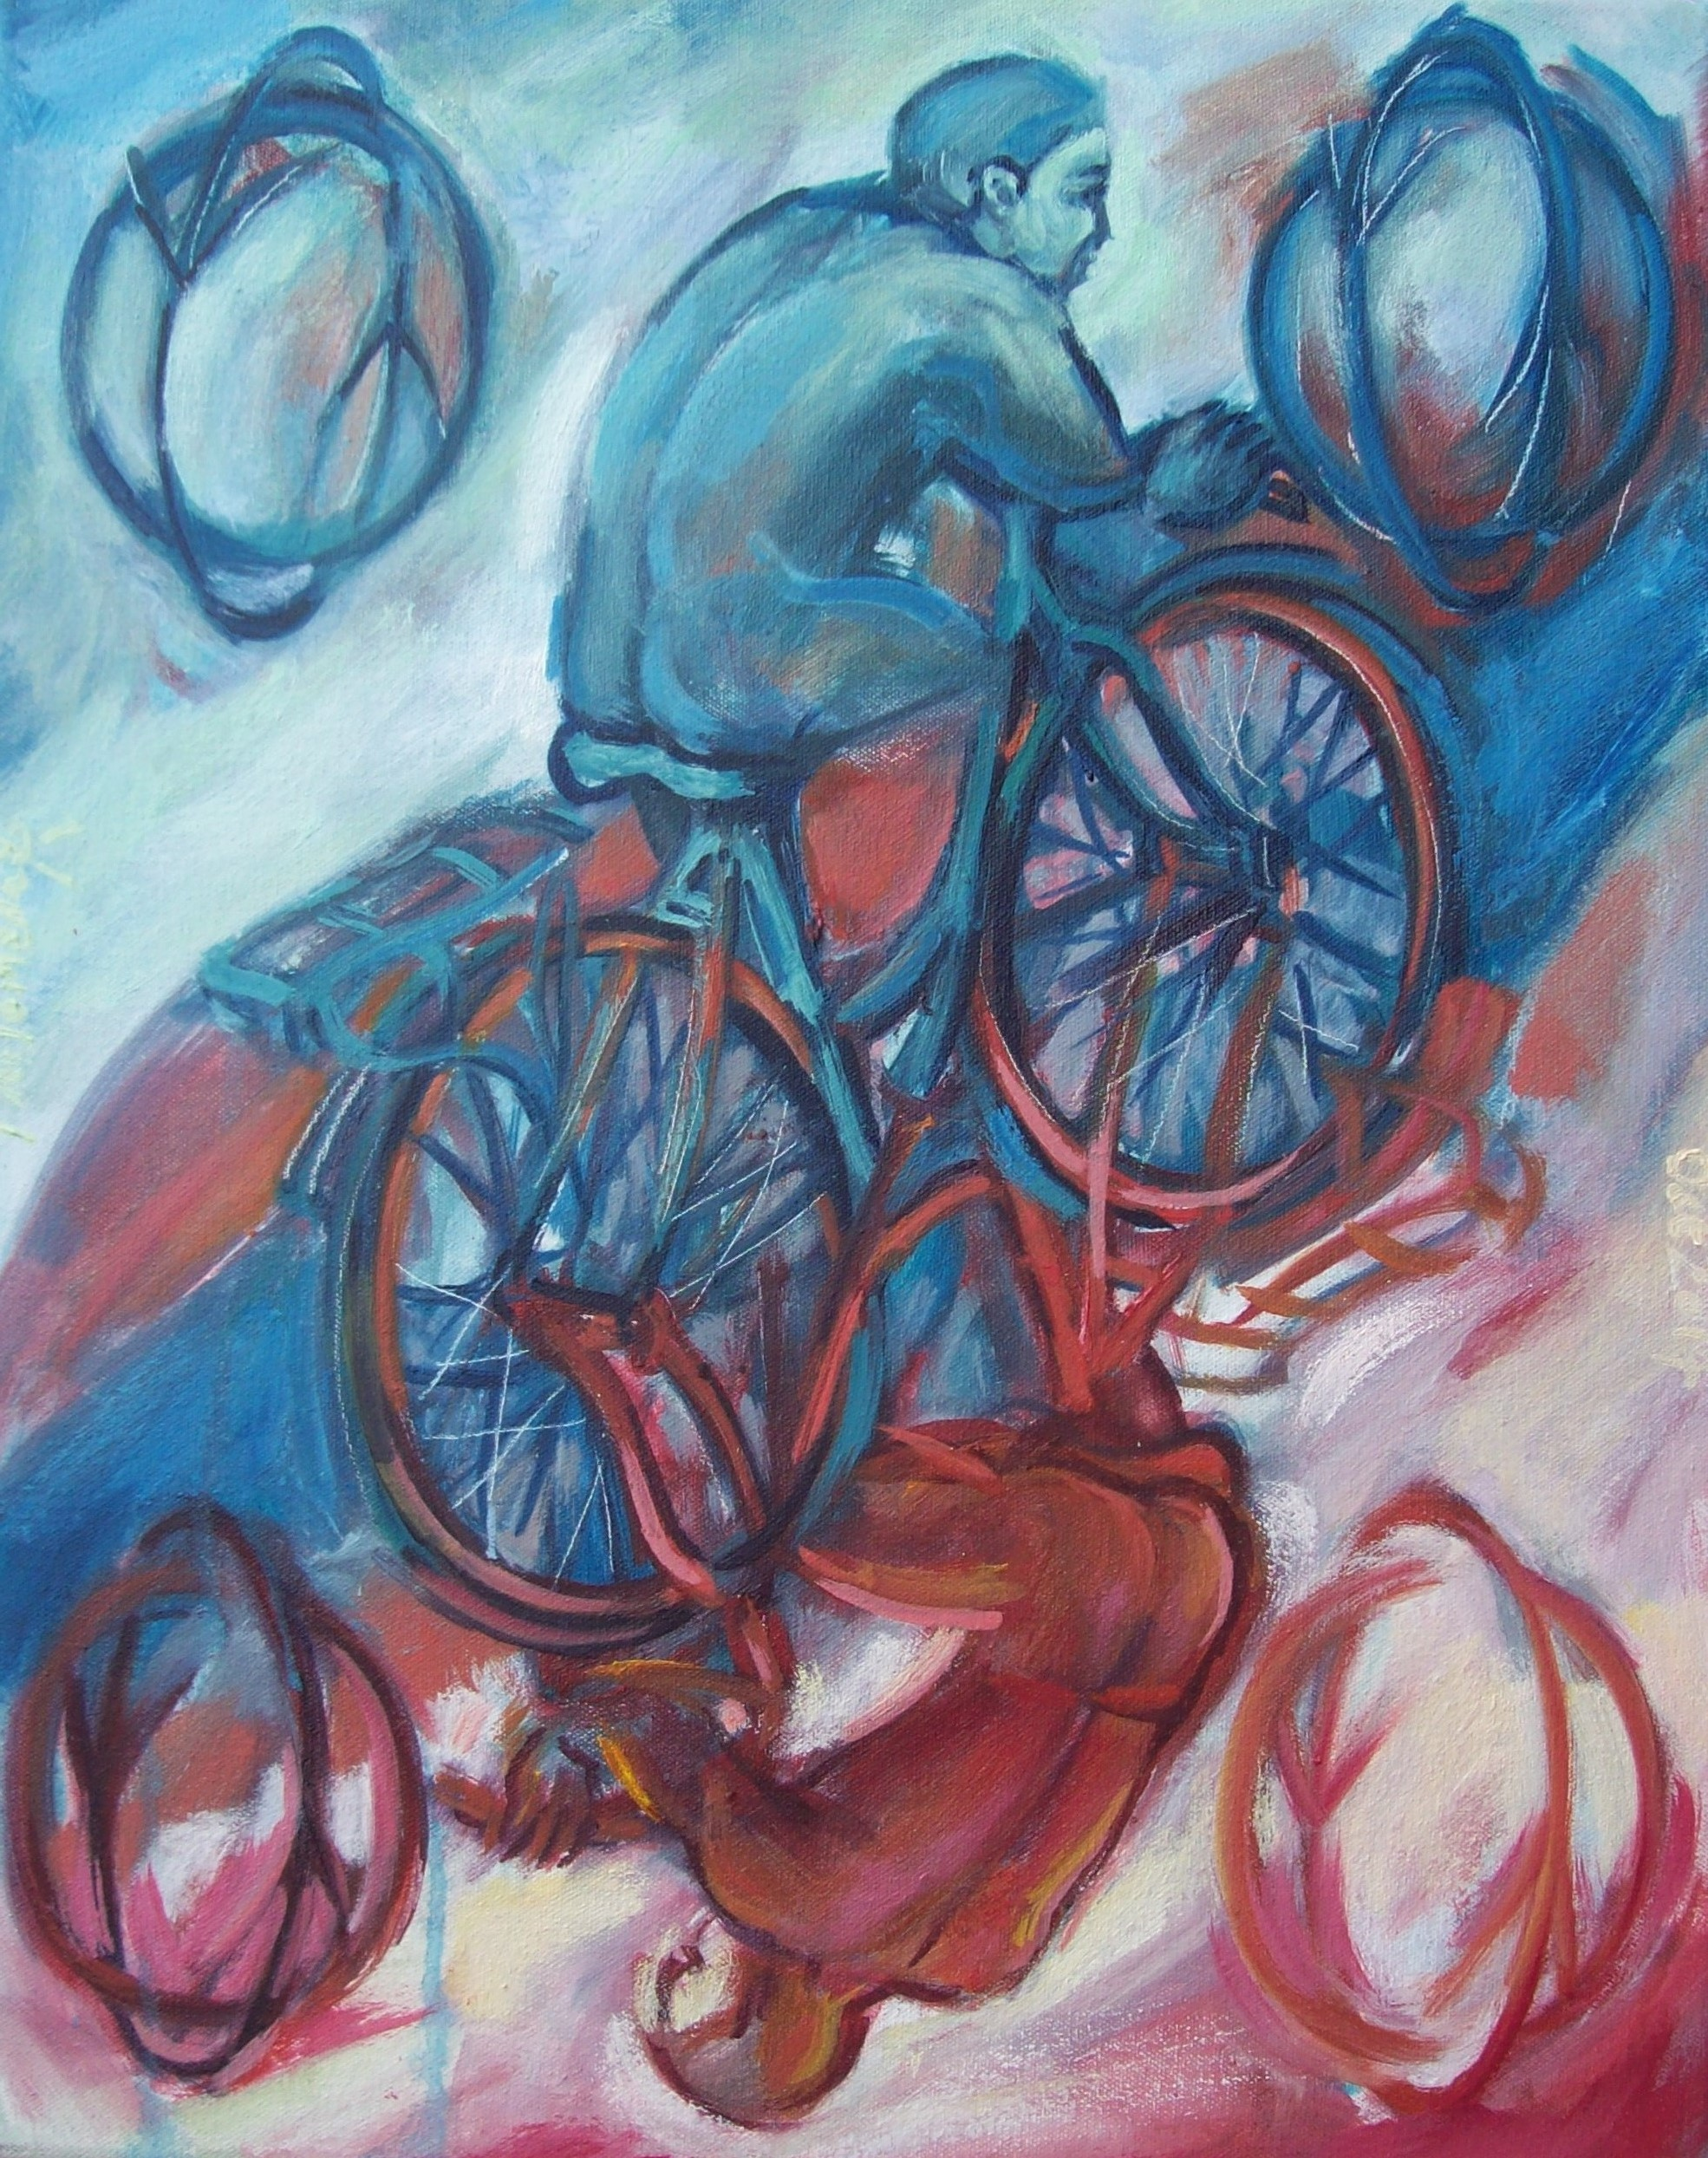 Two of bikes, painting by Philomena Harmsworth